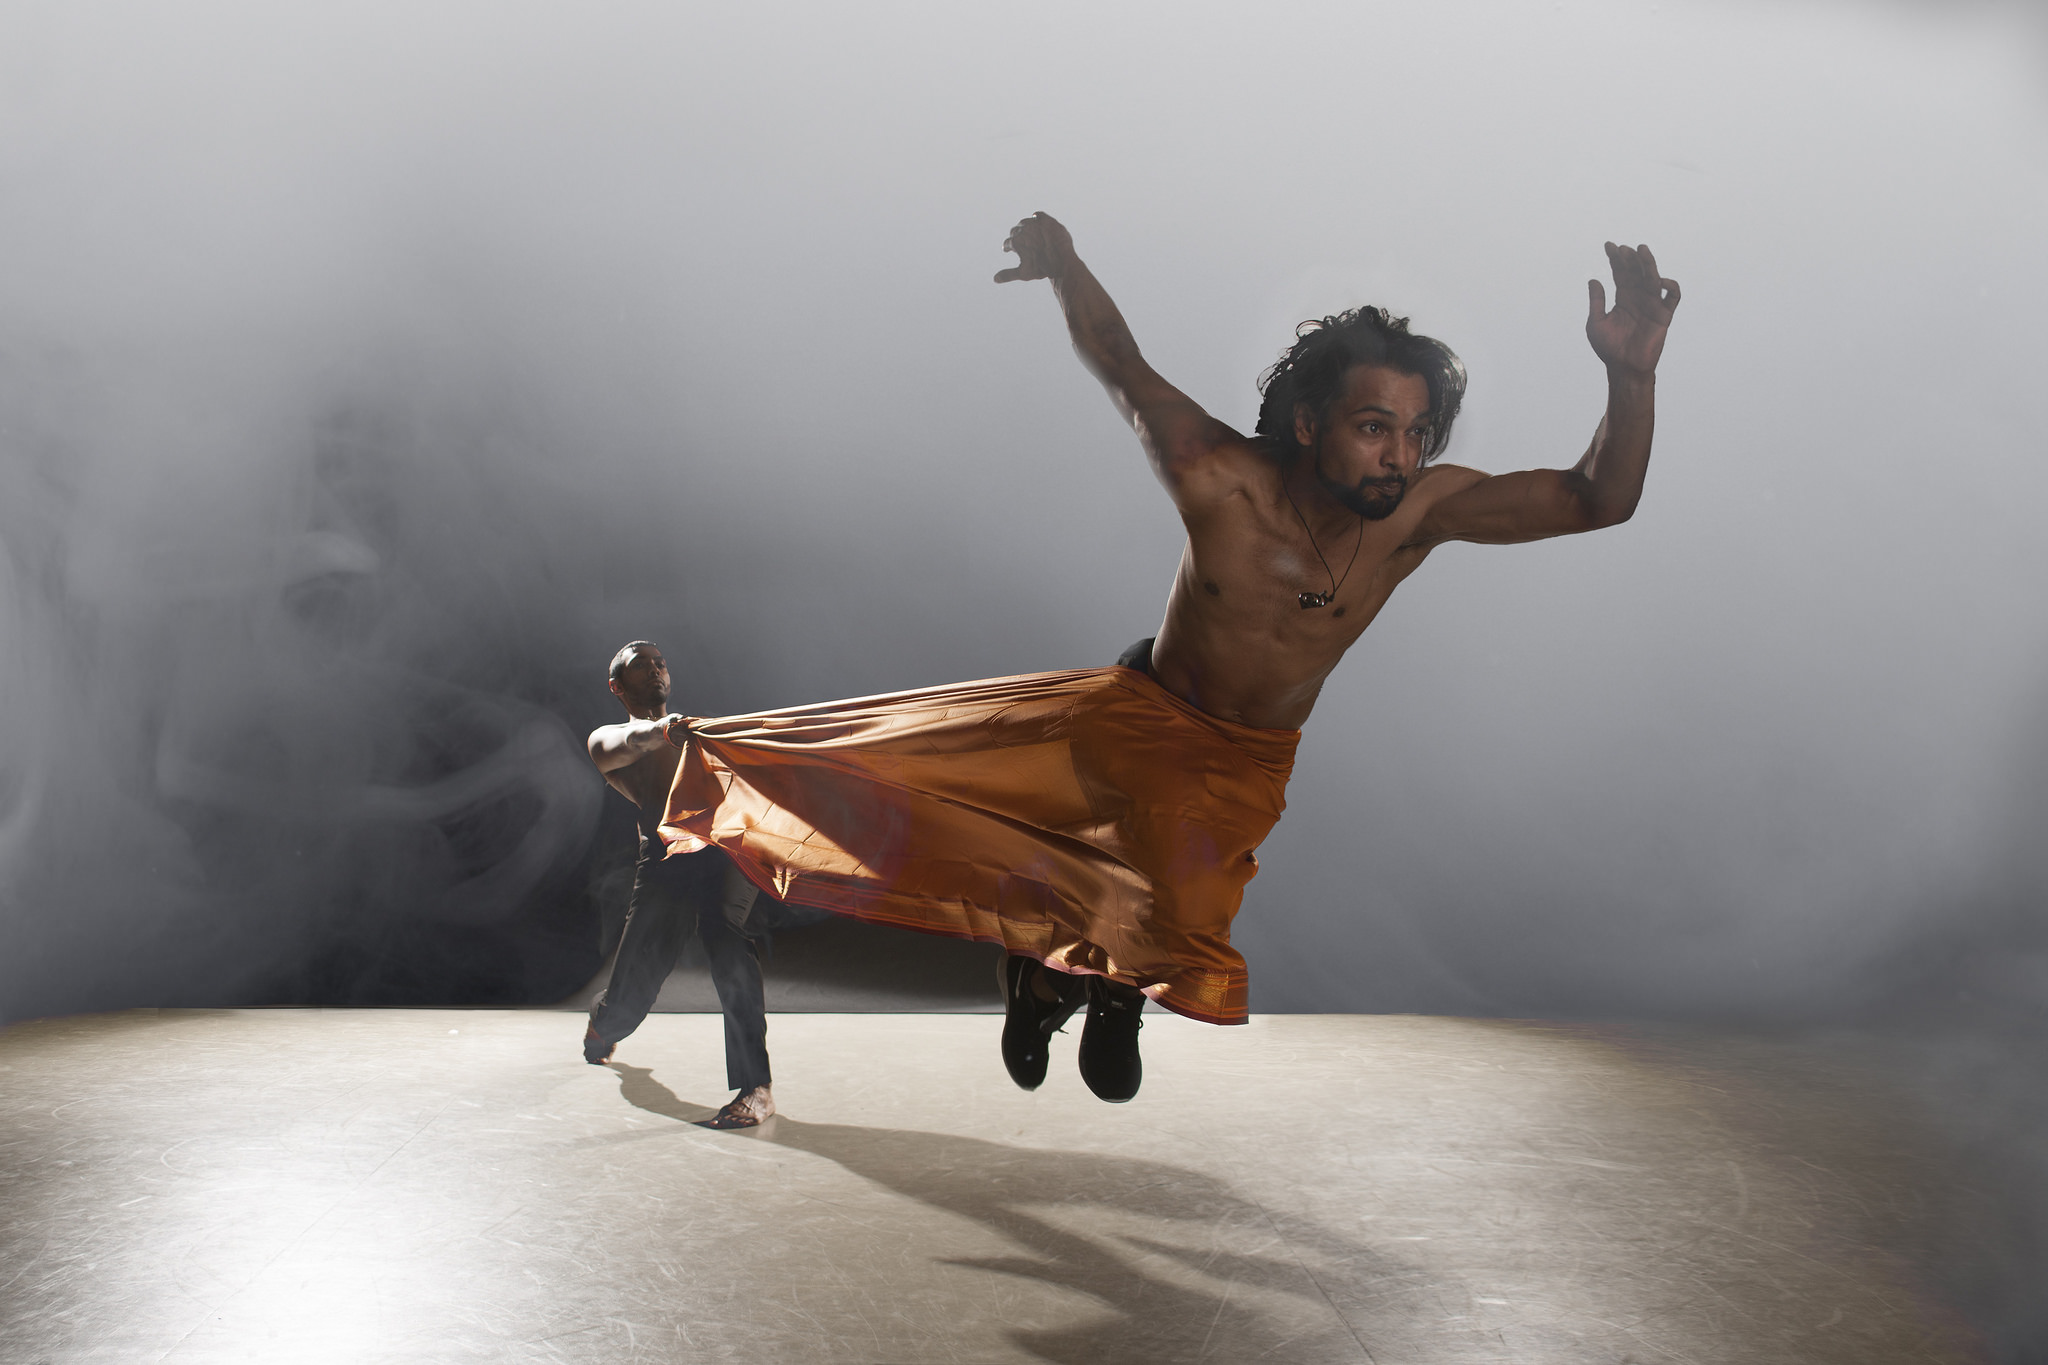 A dancer is hurled through the air, suspended by a large piece of fabric.